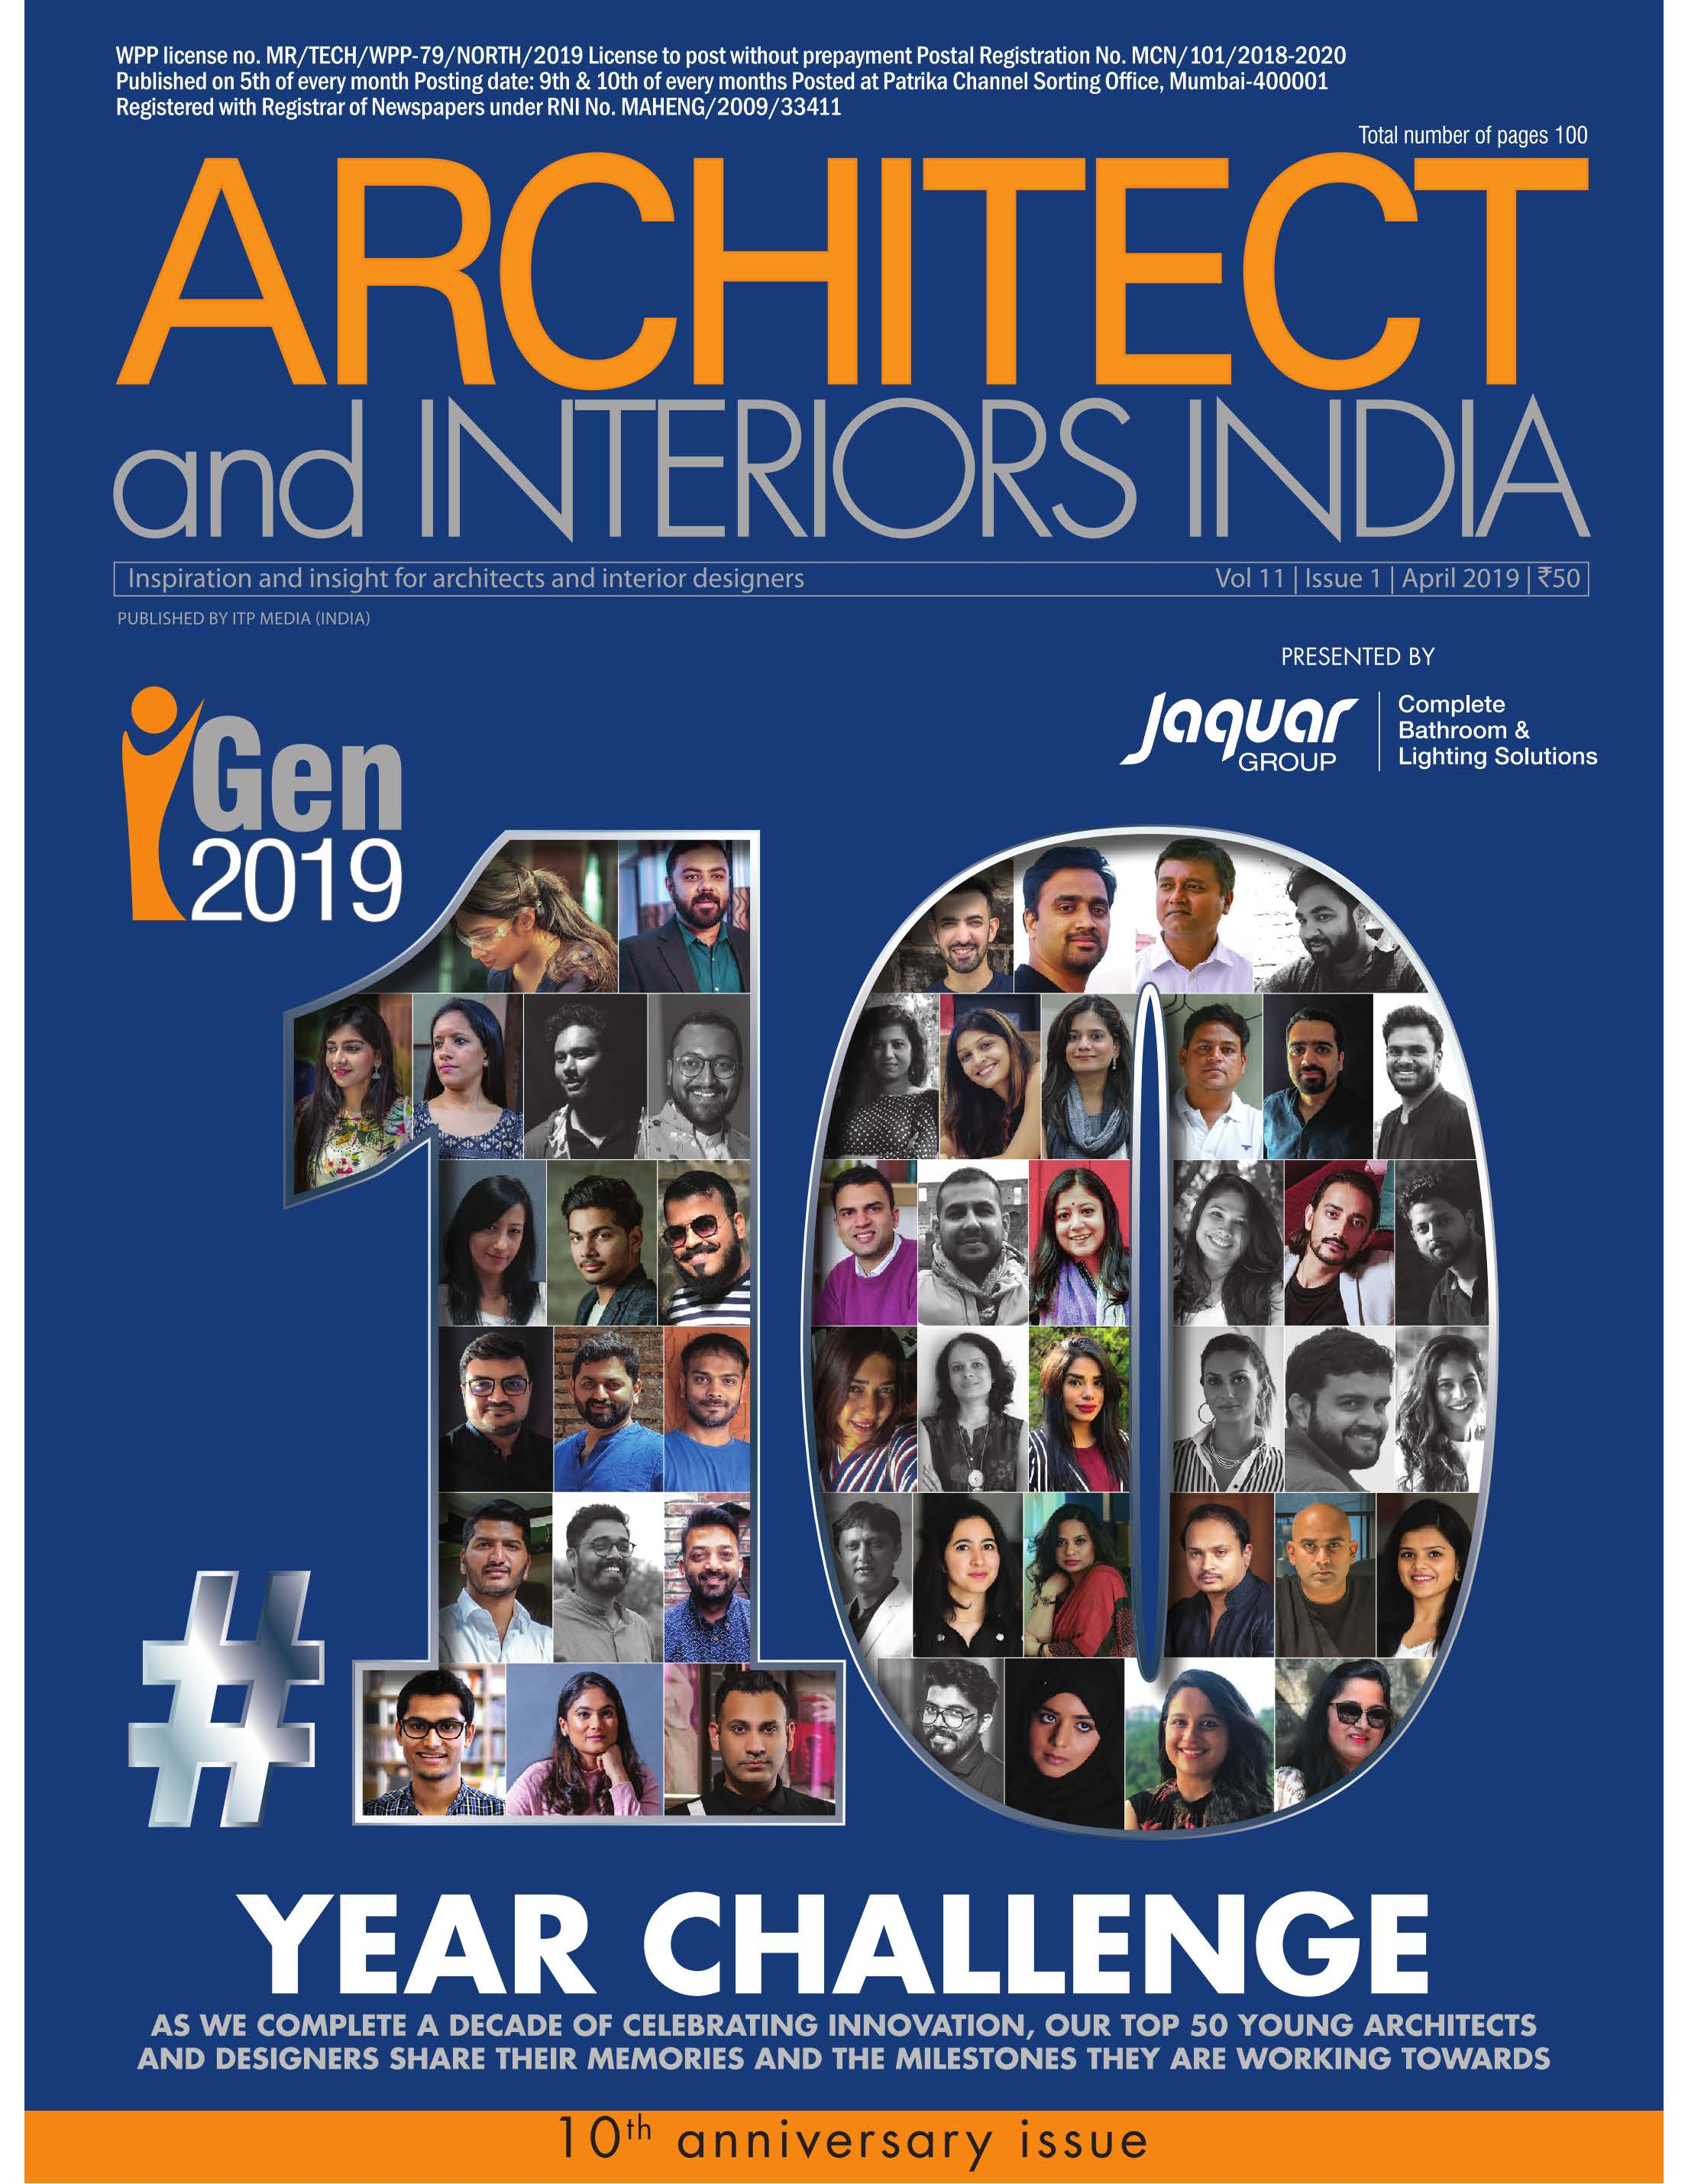 Architect and Interiors India